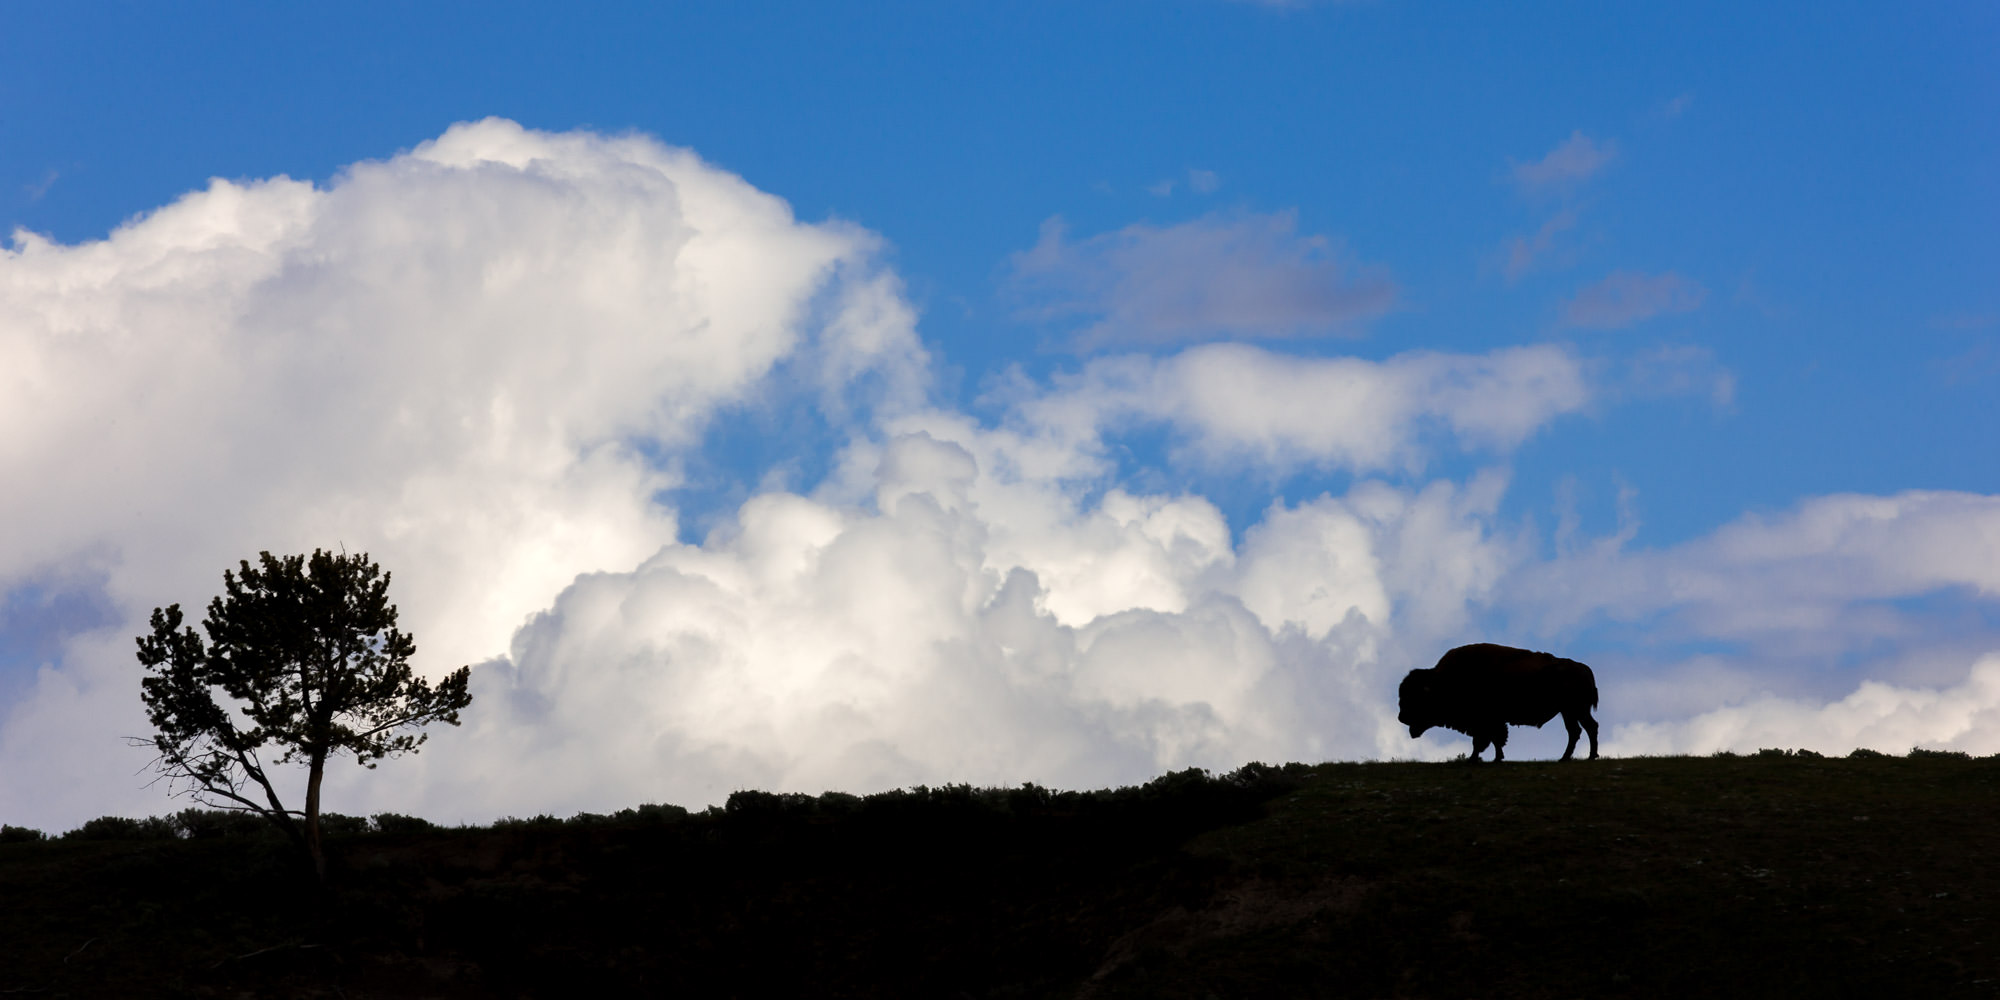 Wyoming, Yellowstone, Bison, clouds, limited edition, photograph, fine art, wildlife, photo